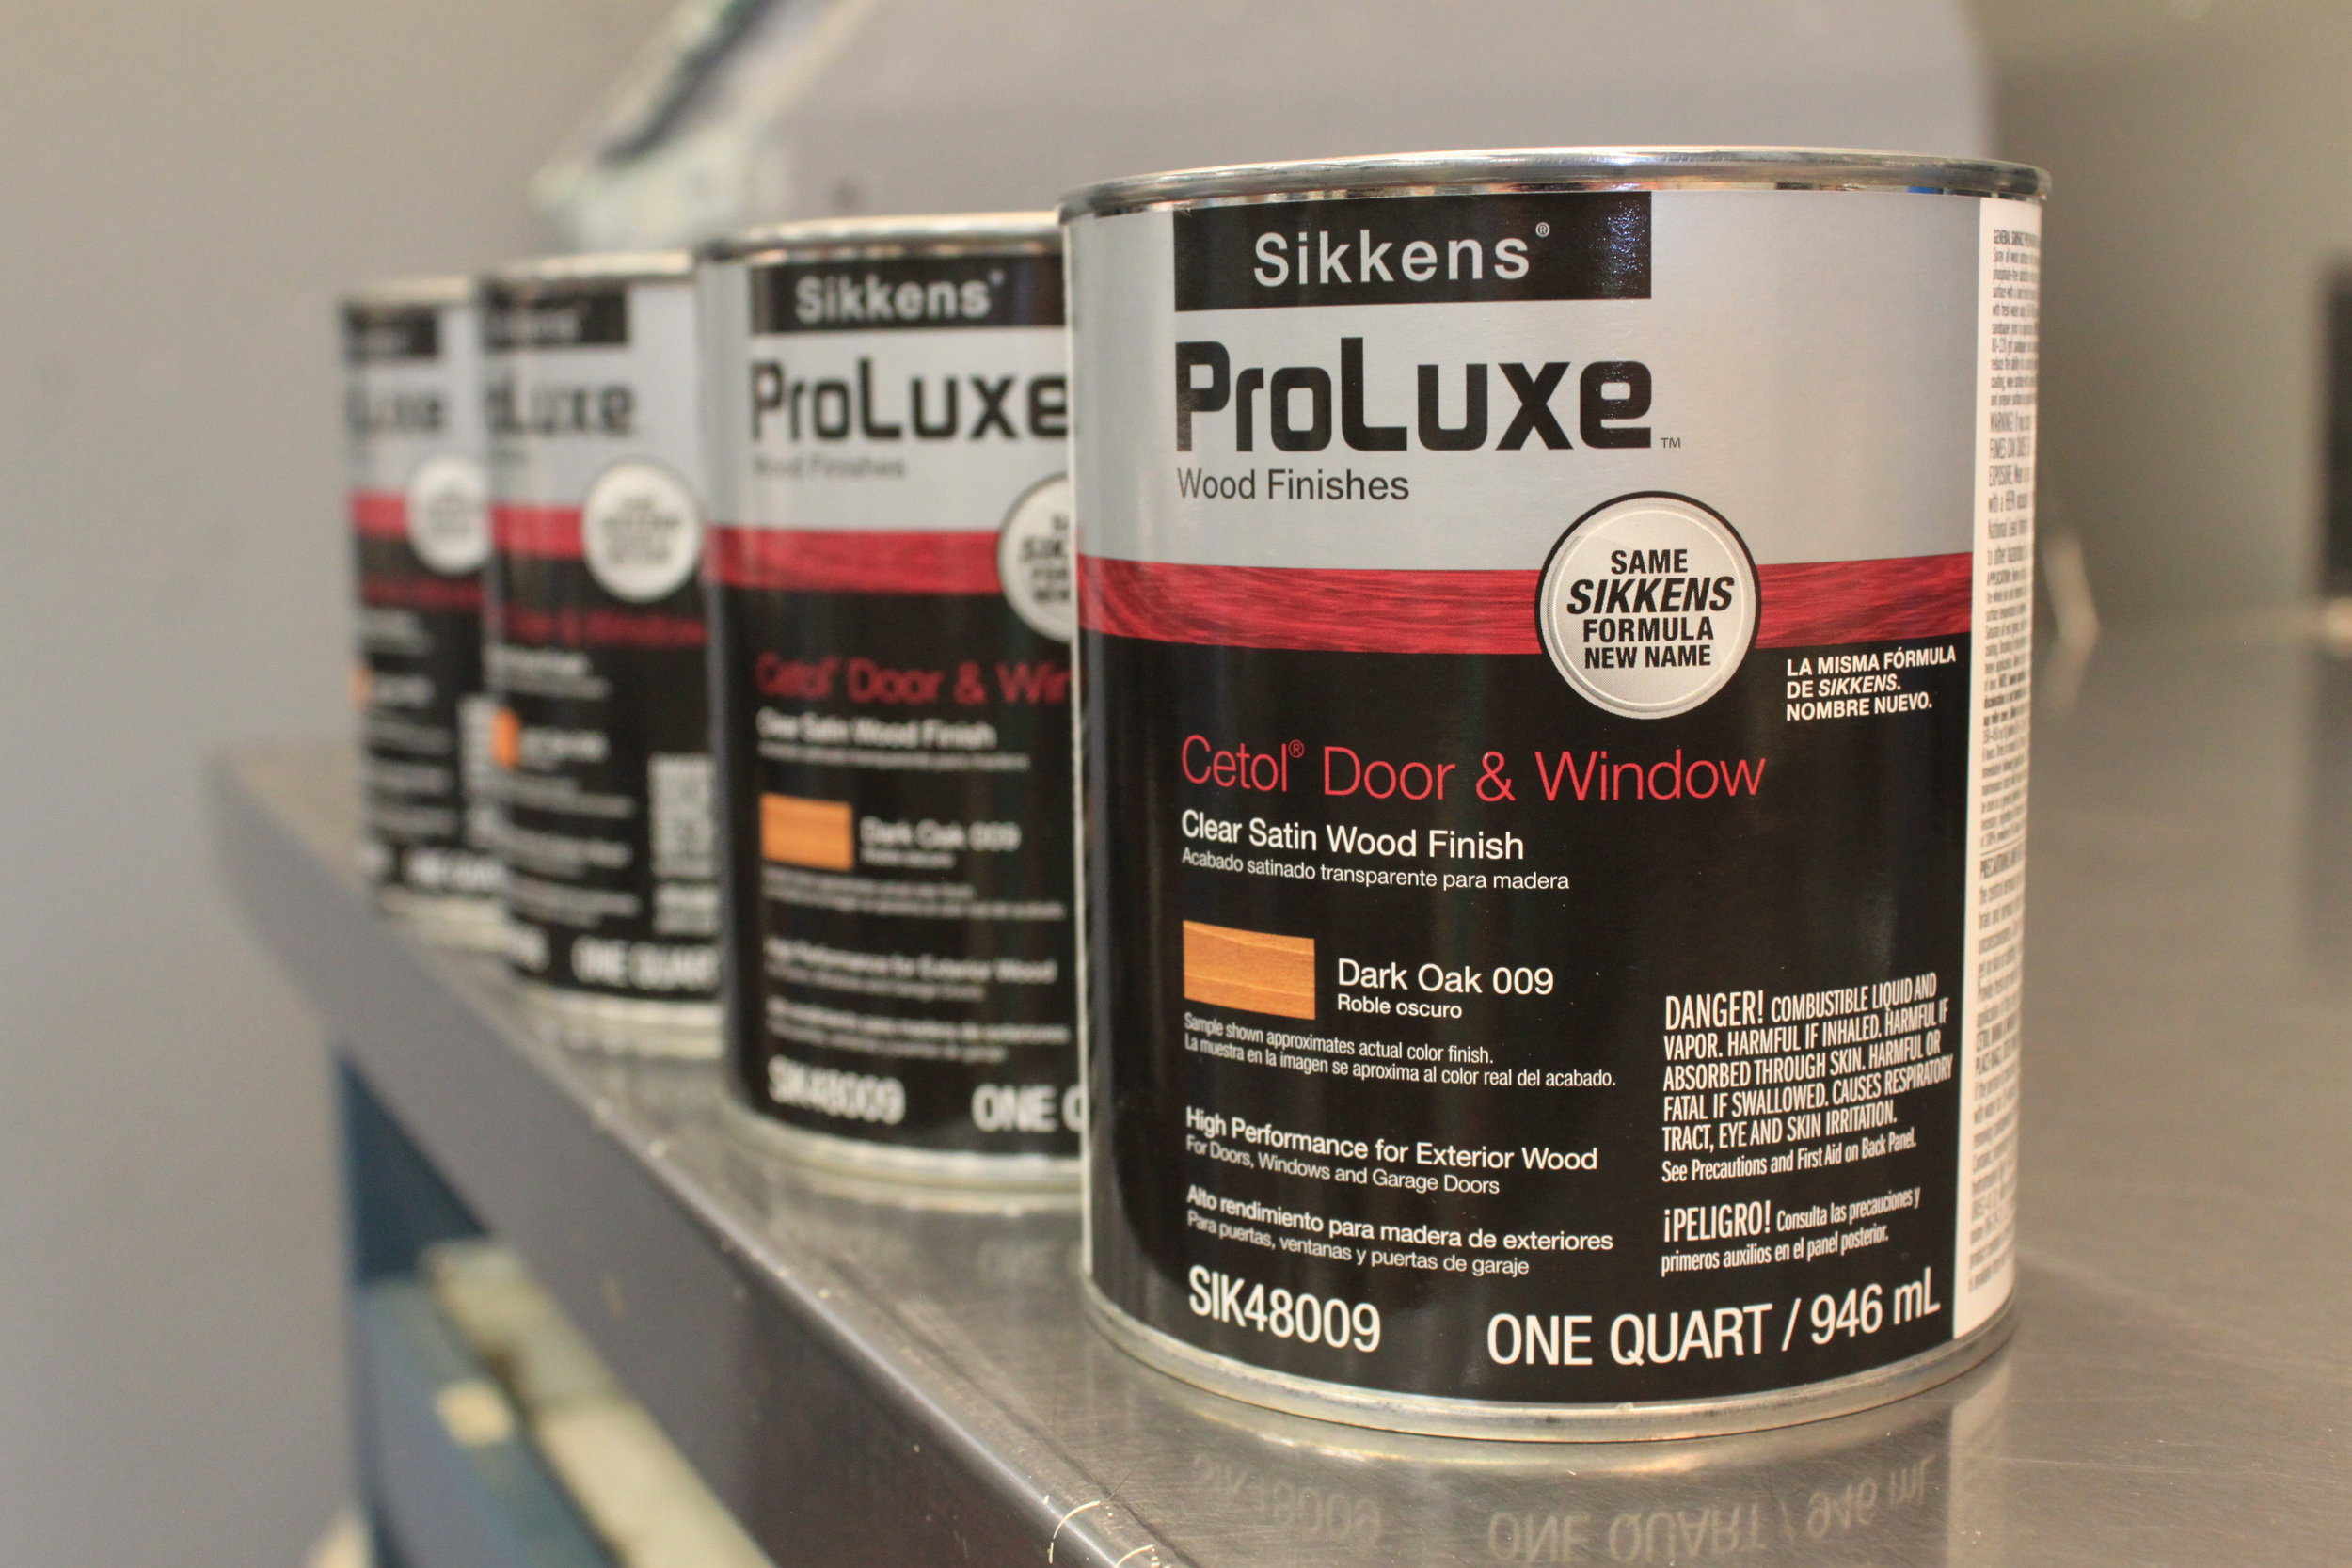 PPG ProLuxe  PPG ProLuxe products are designed to provide a distinctively rich and vibrant finish, durability, and performance on all types of exterior wood, from decks to siding, windows, and doors.